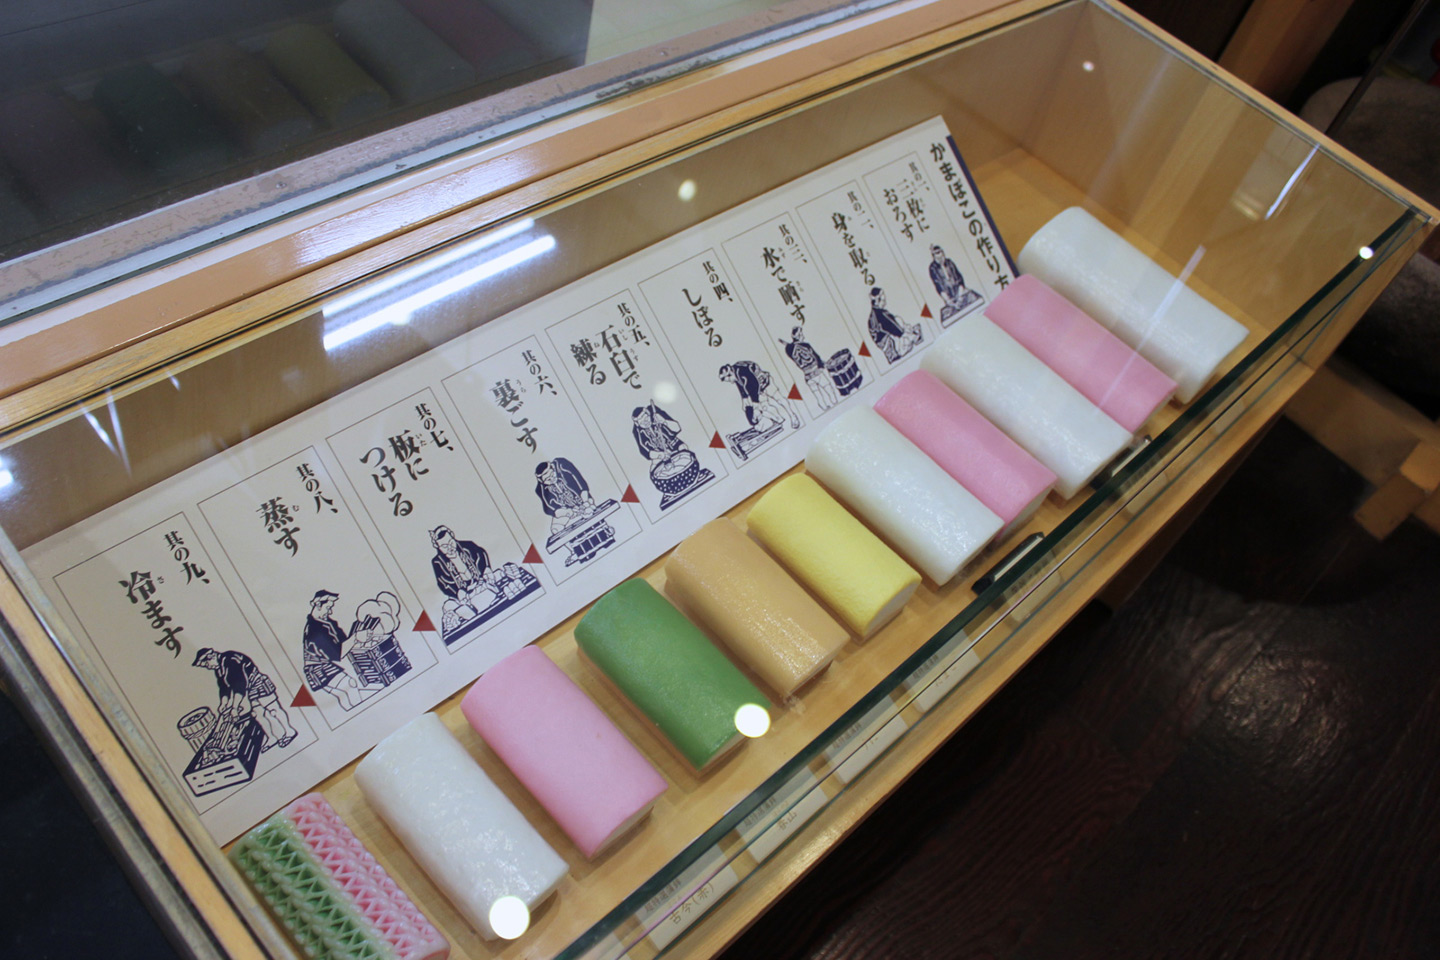 display case showing finished kamaboko fish rolls